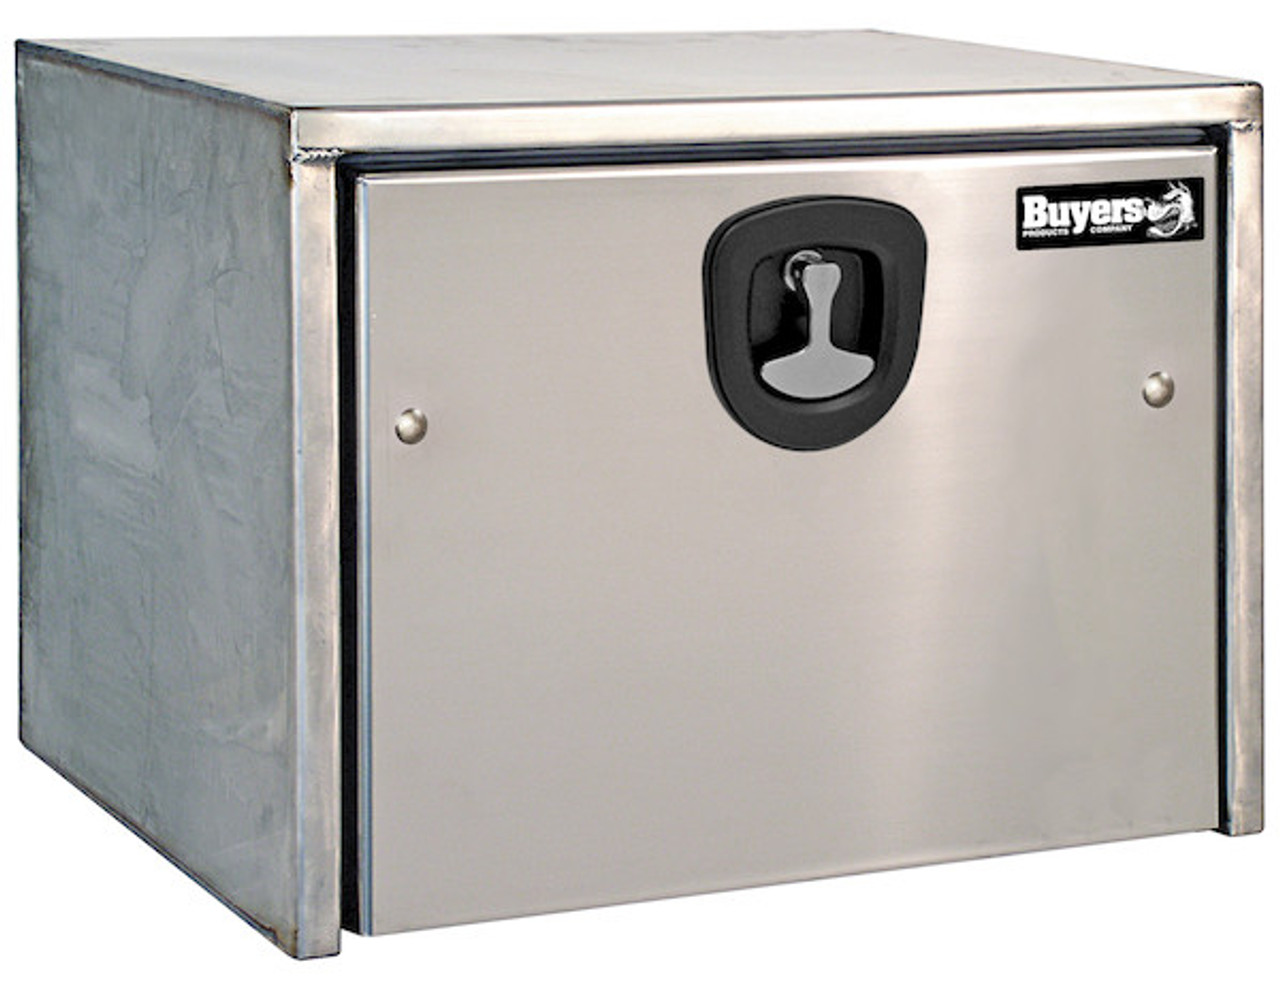 1702600 BUYERS PRODUCTS STAINLESS STEEL UNDERBODY TRUCK BOX WITH POLISHED STAINLESS STEEL DOOR TOOLBOX